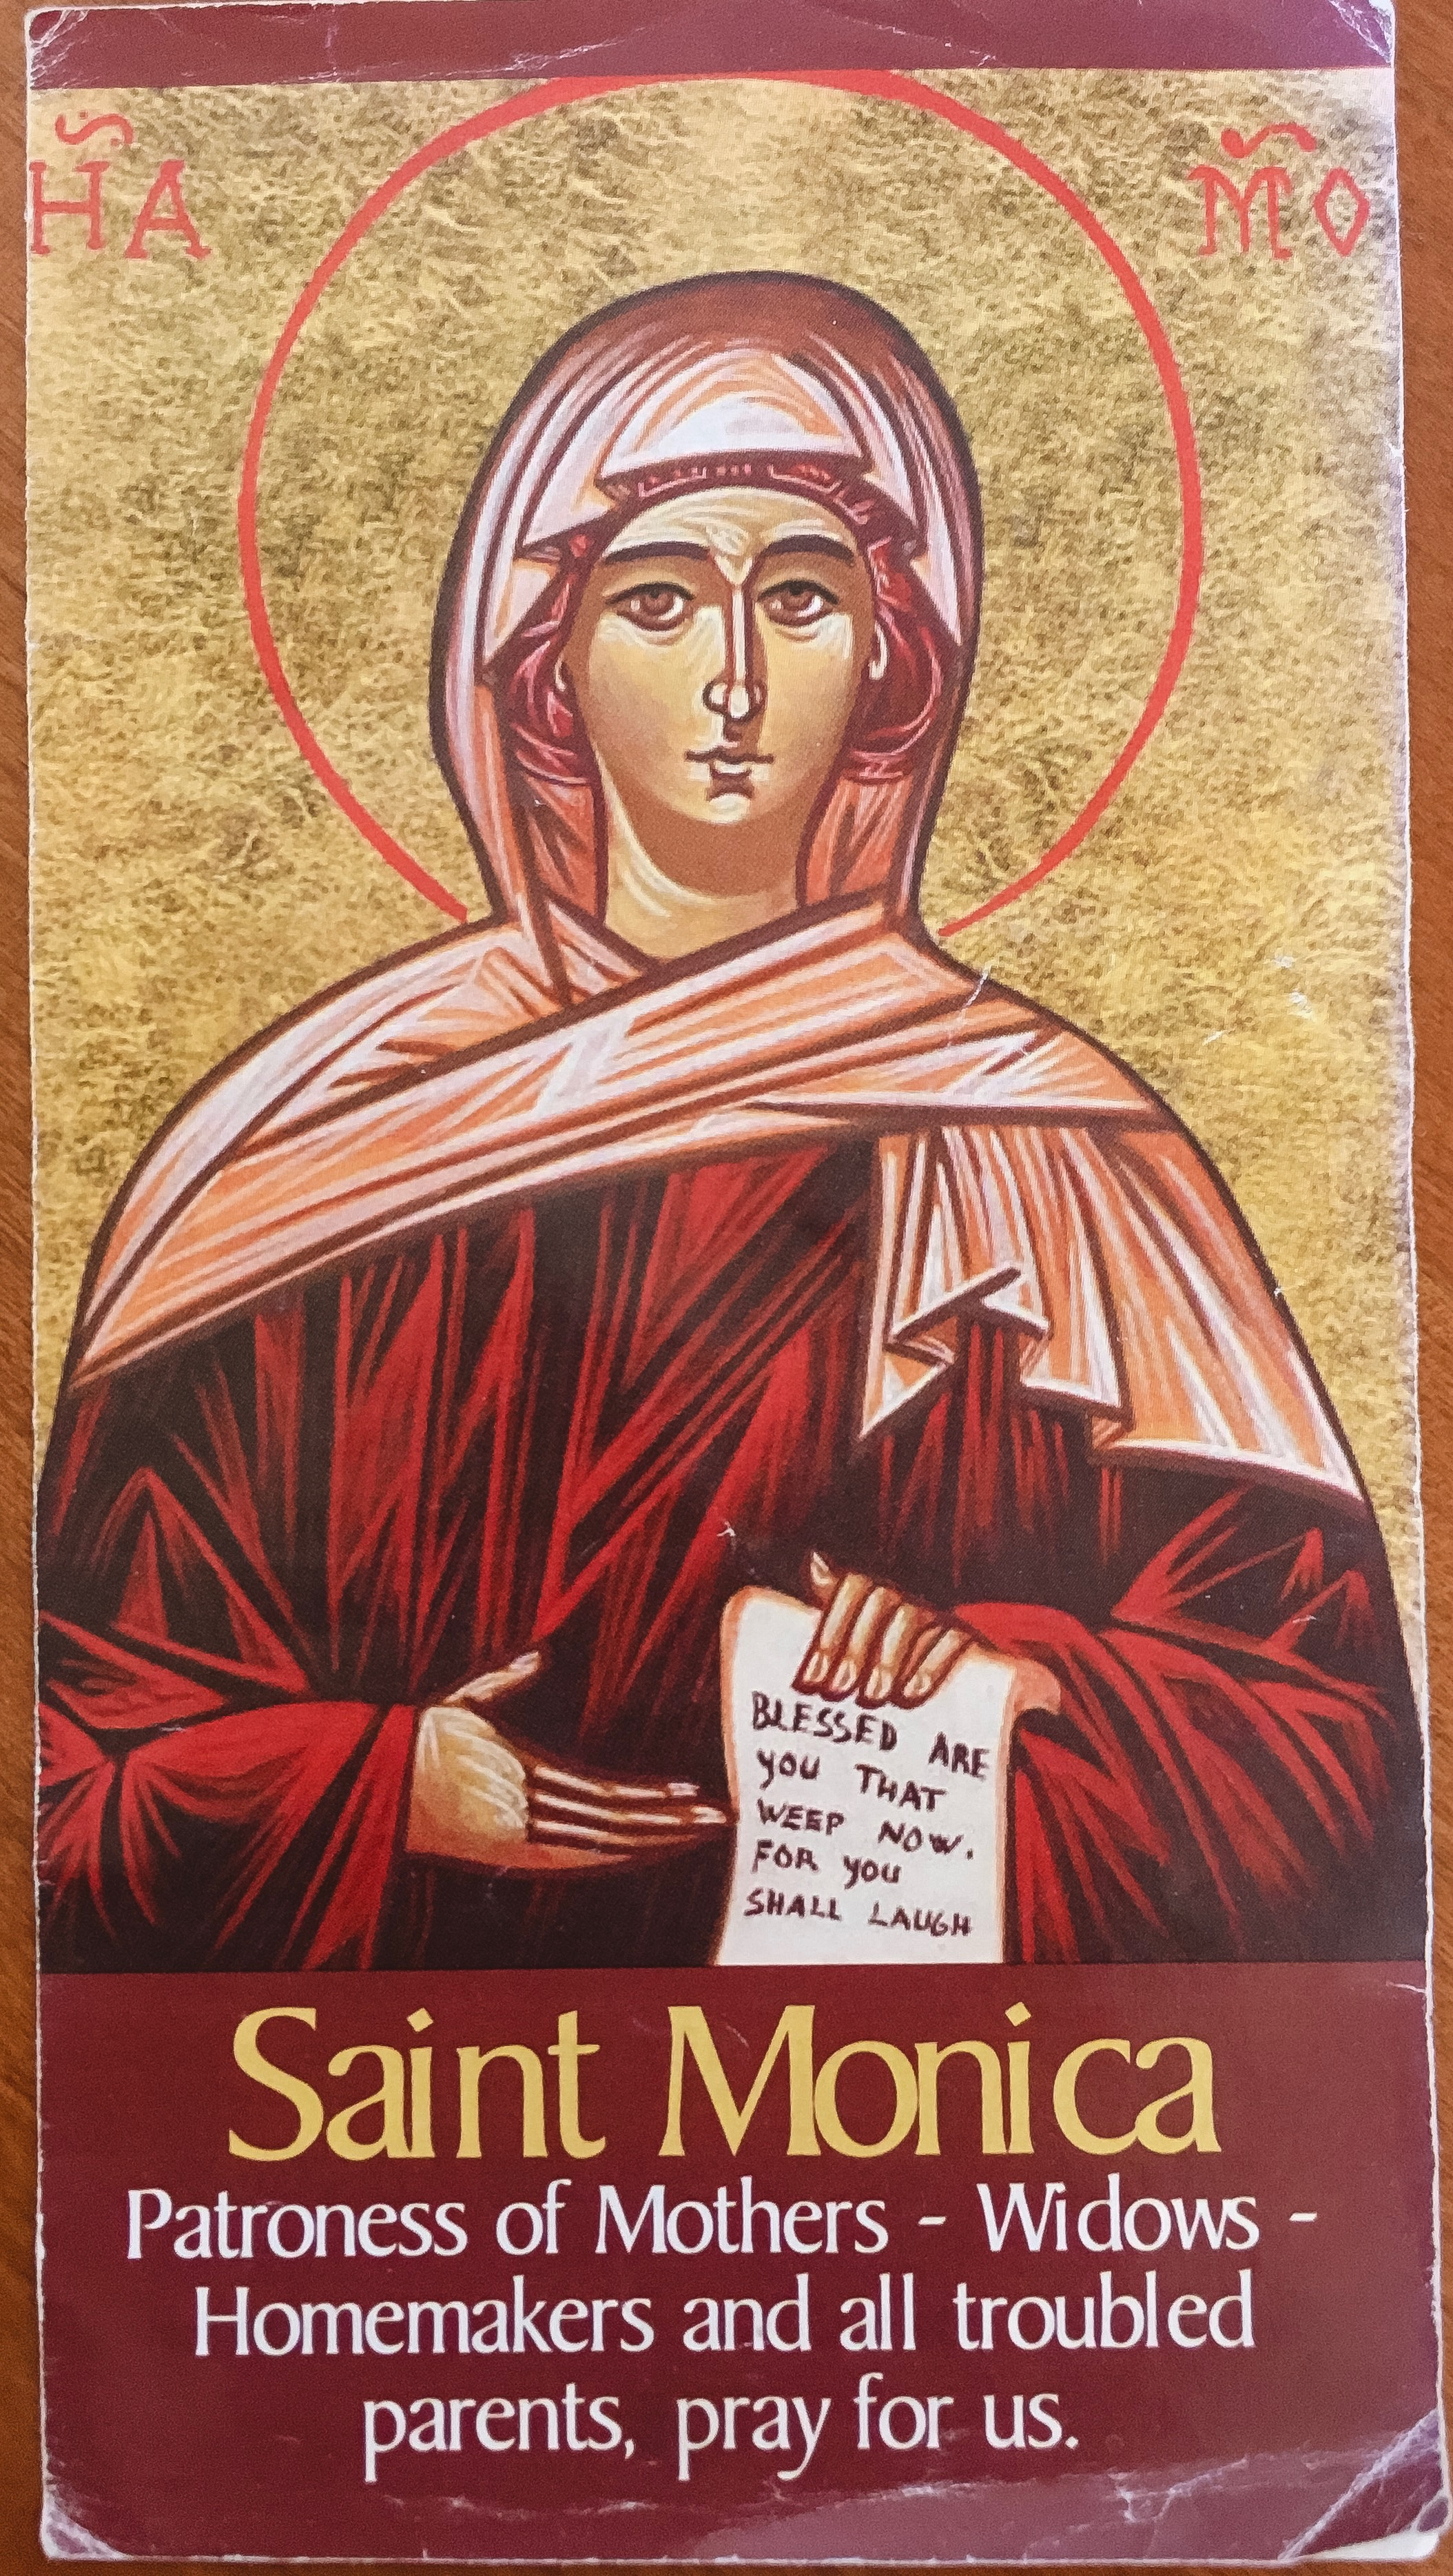 Prayer at childbirth and the help of the image of the Virgin